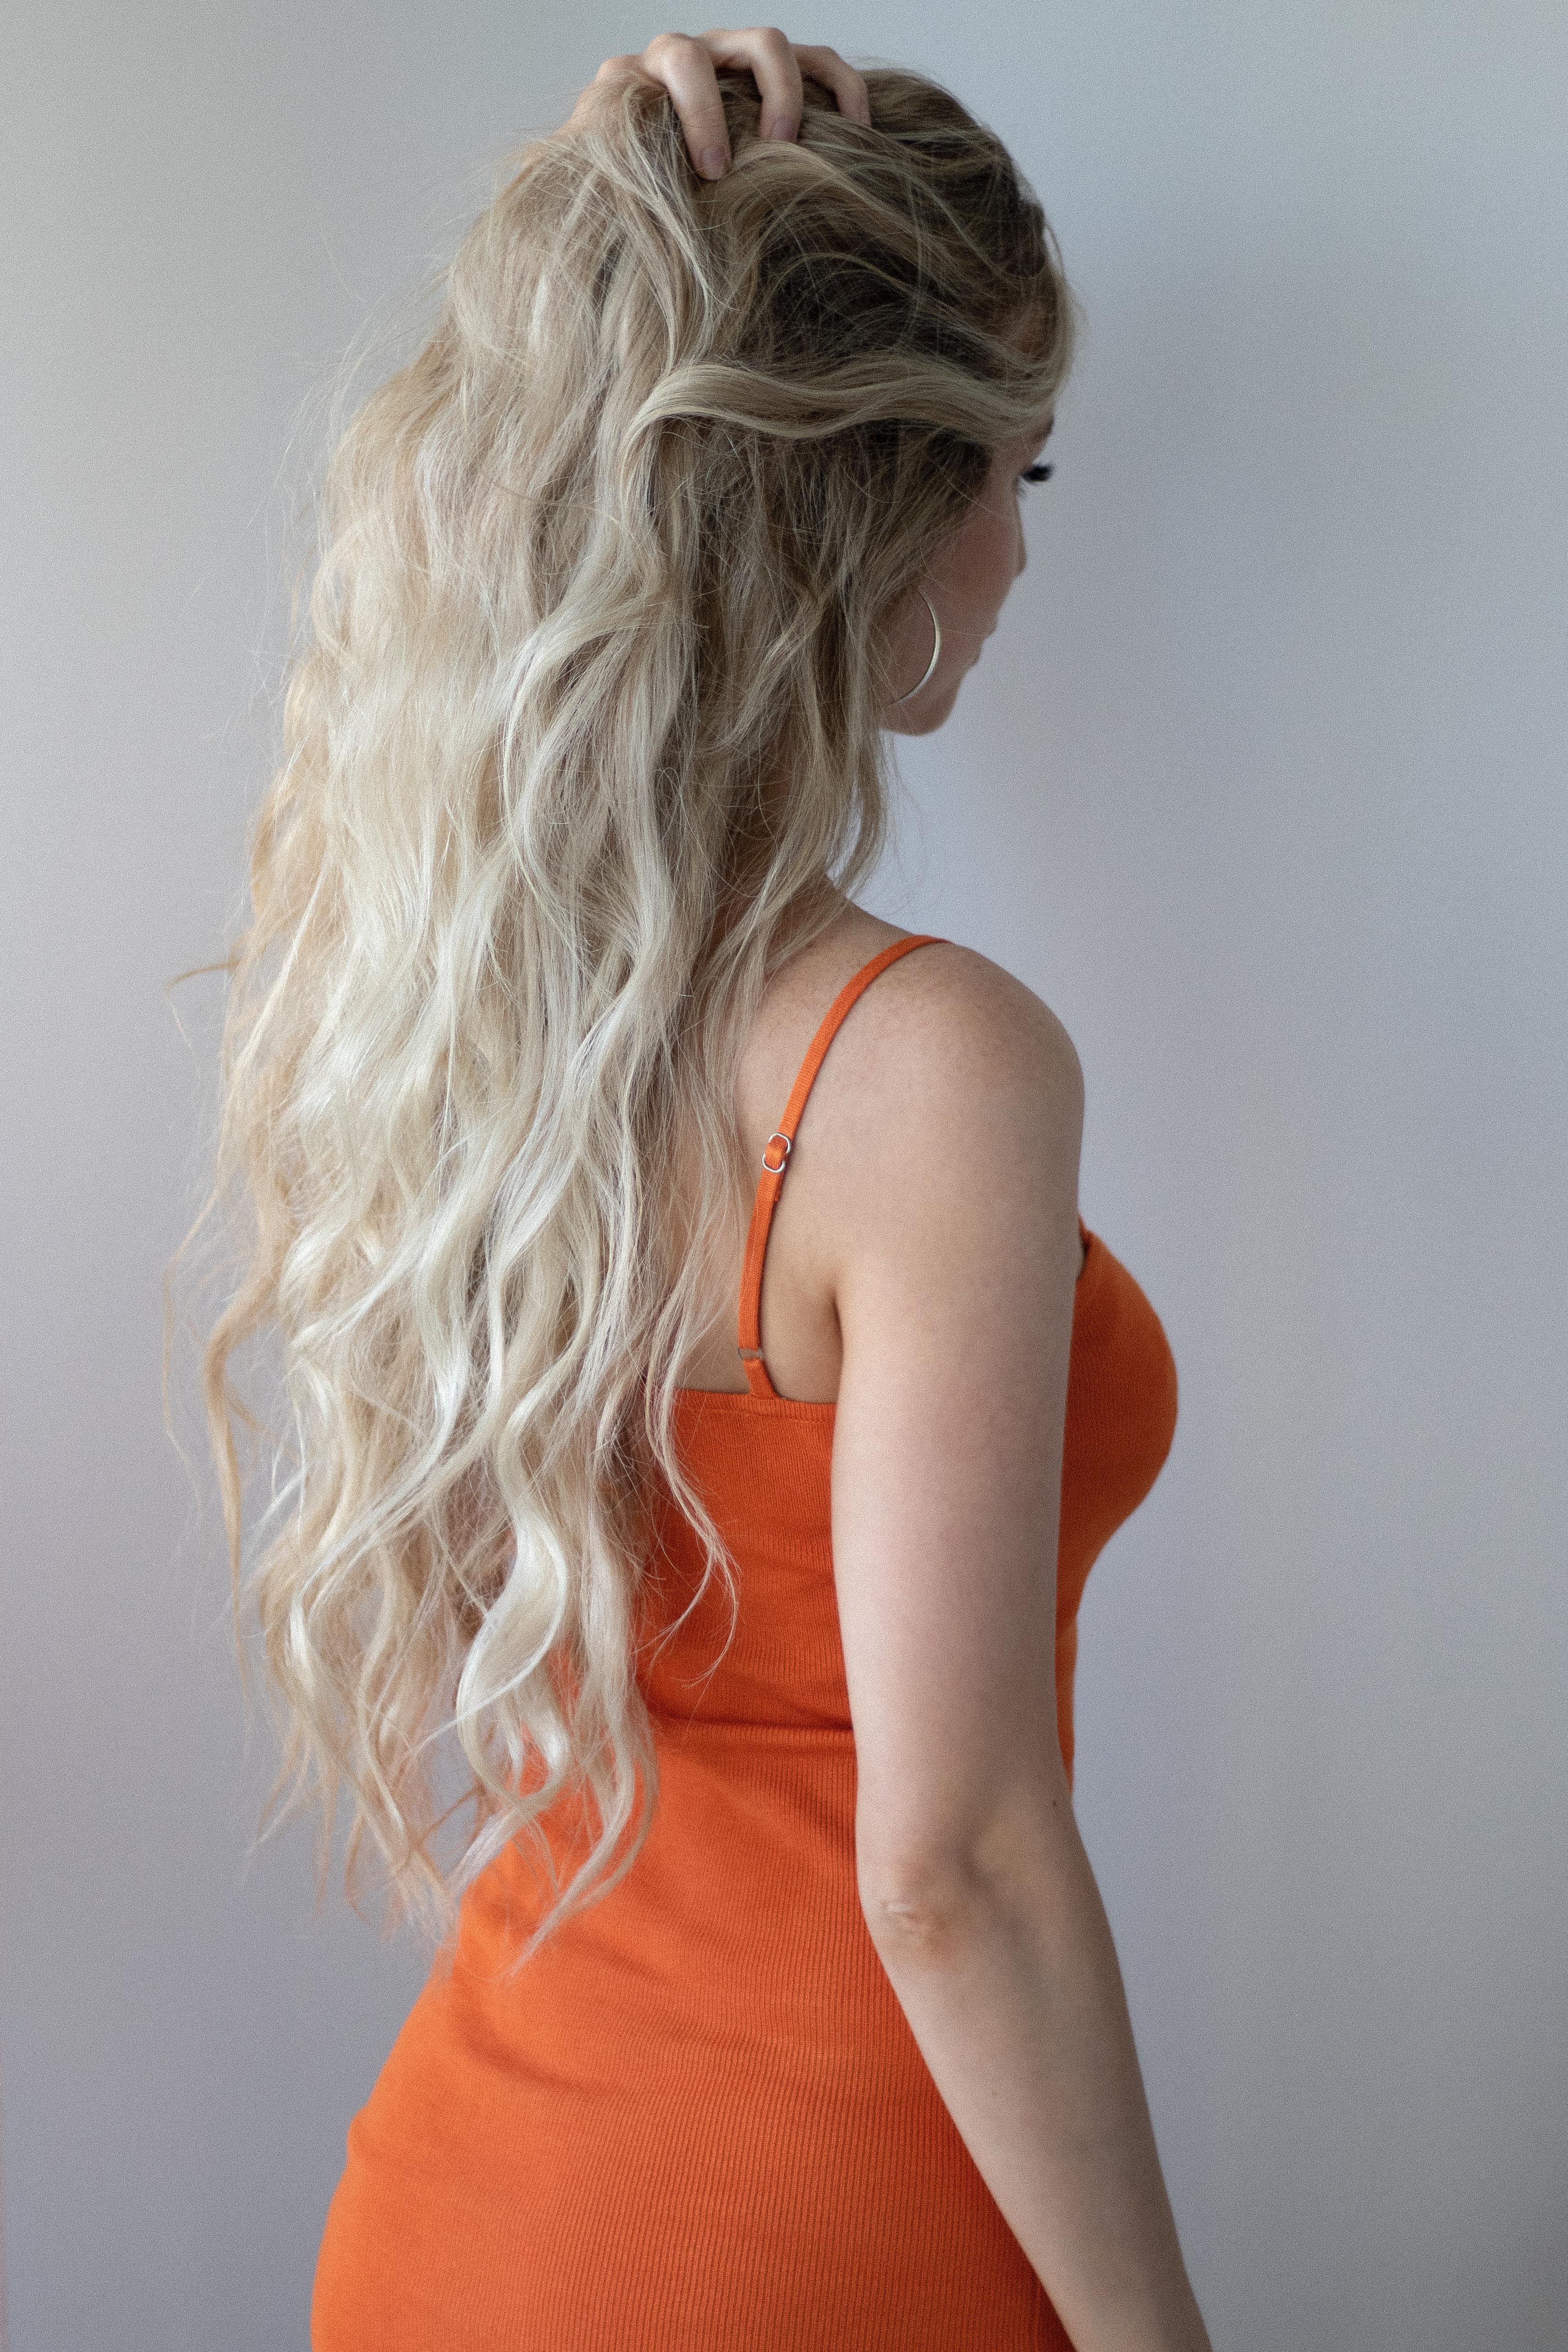 BEACH WAVES WITH FLAT IRON HAIR TUTORIAL || www.alexgaboury.com